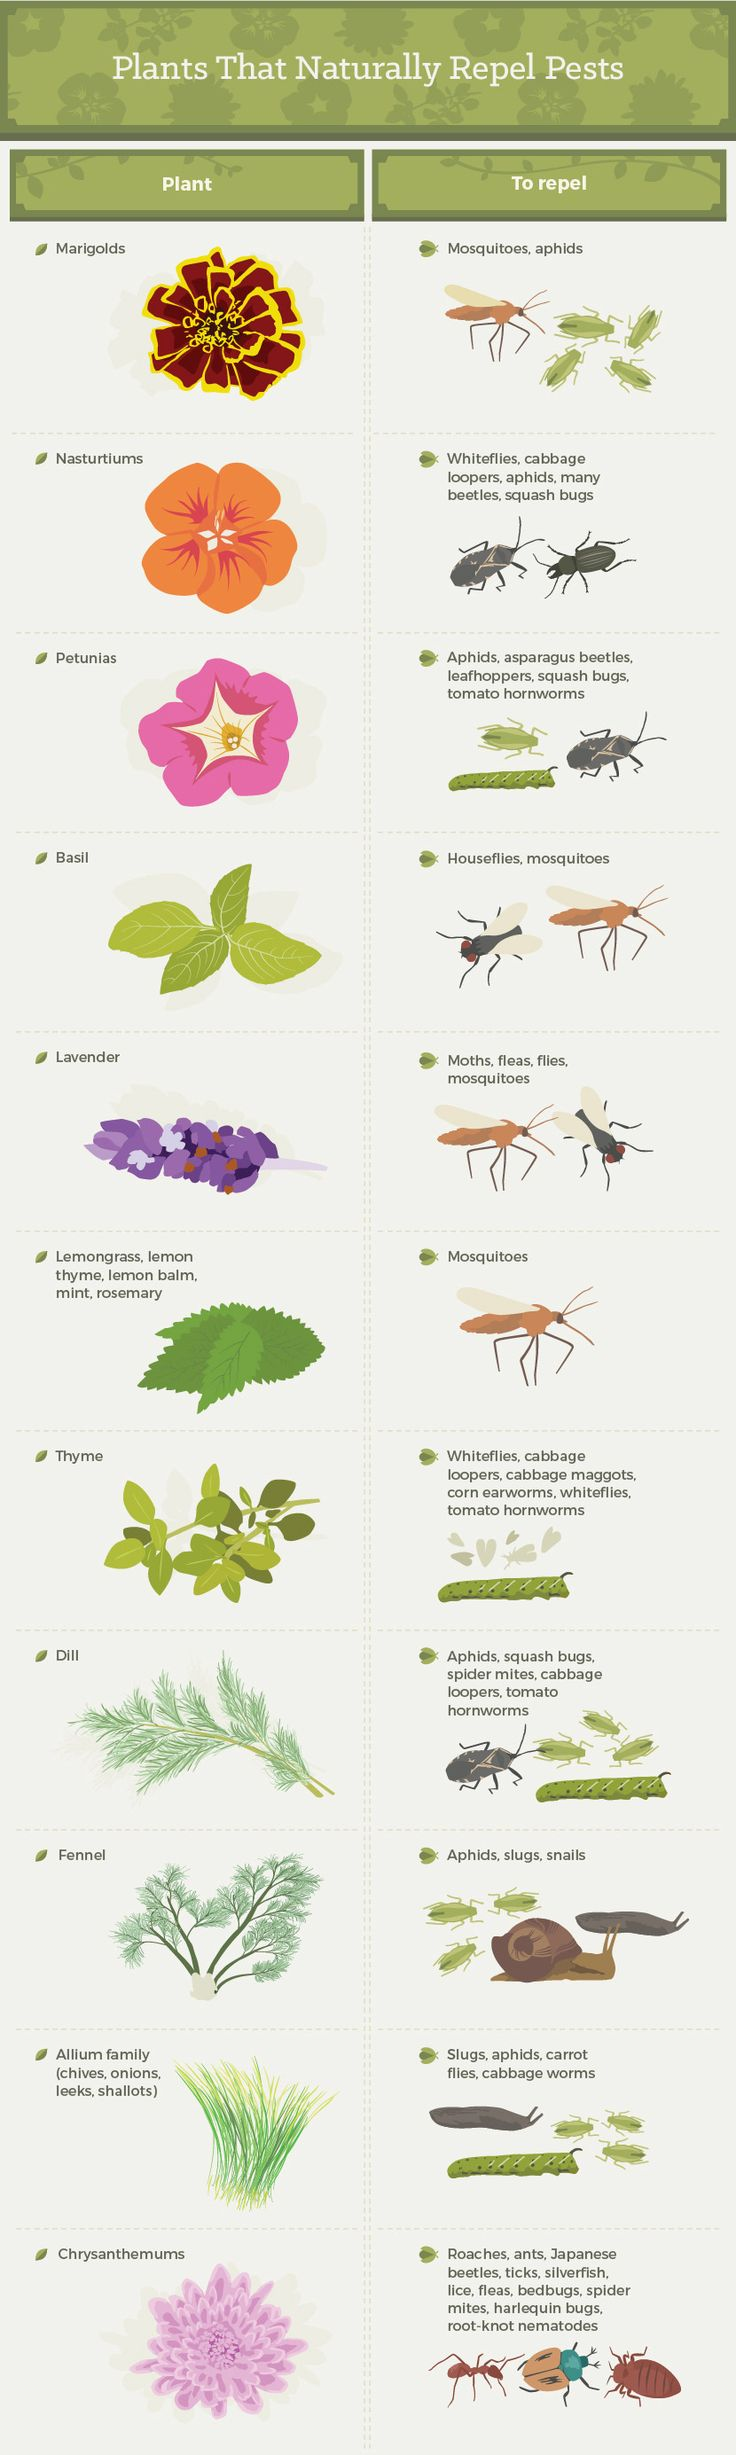 Plants that Naturally Repel Pests and other natural bug repellents.